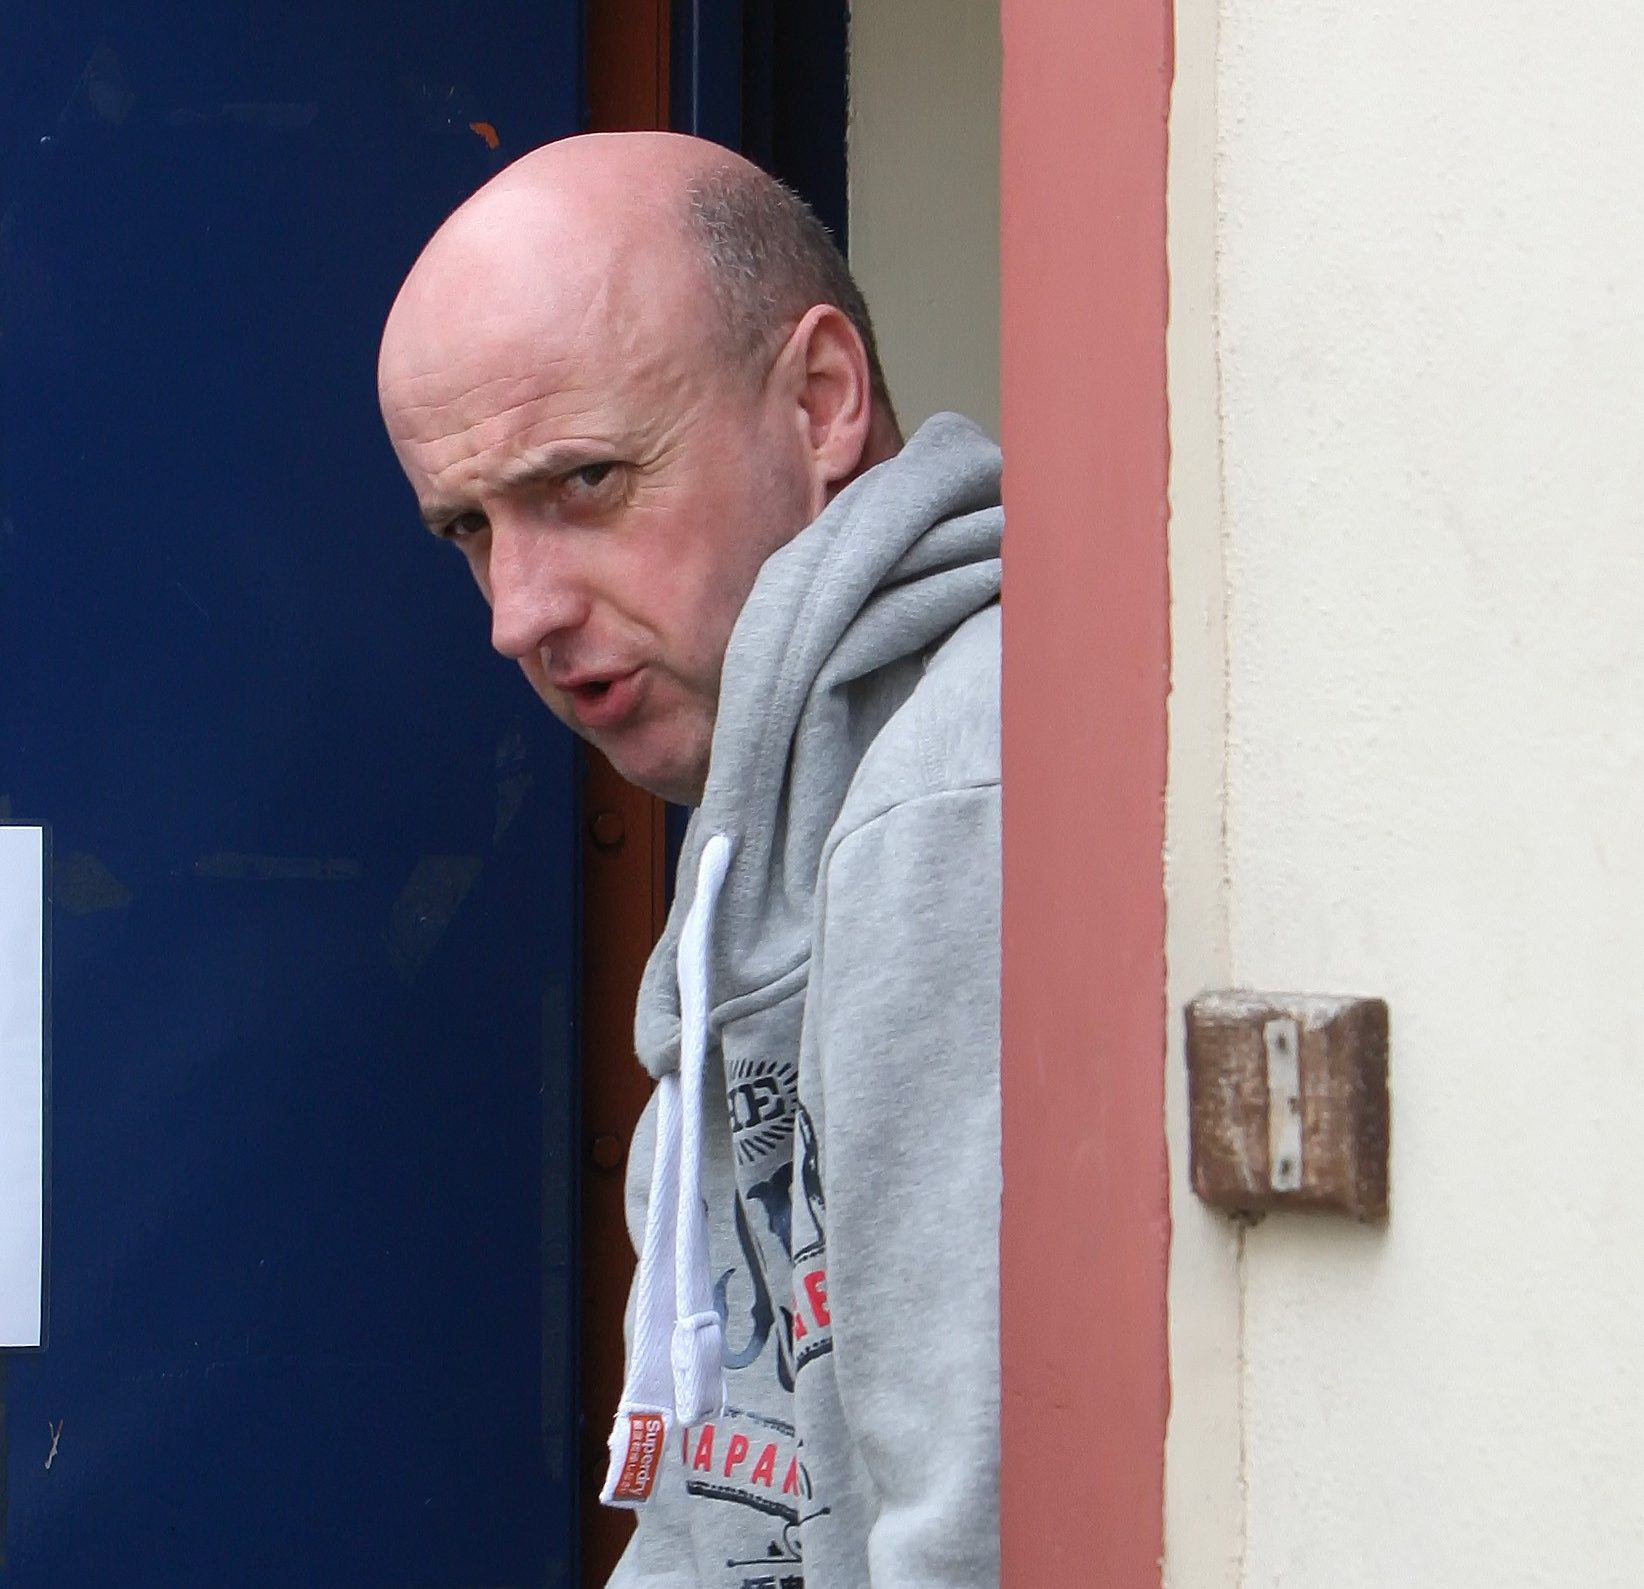 Lee Blackburn clocked-up hundreds of miles as he turned up unannounced at his victim's work